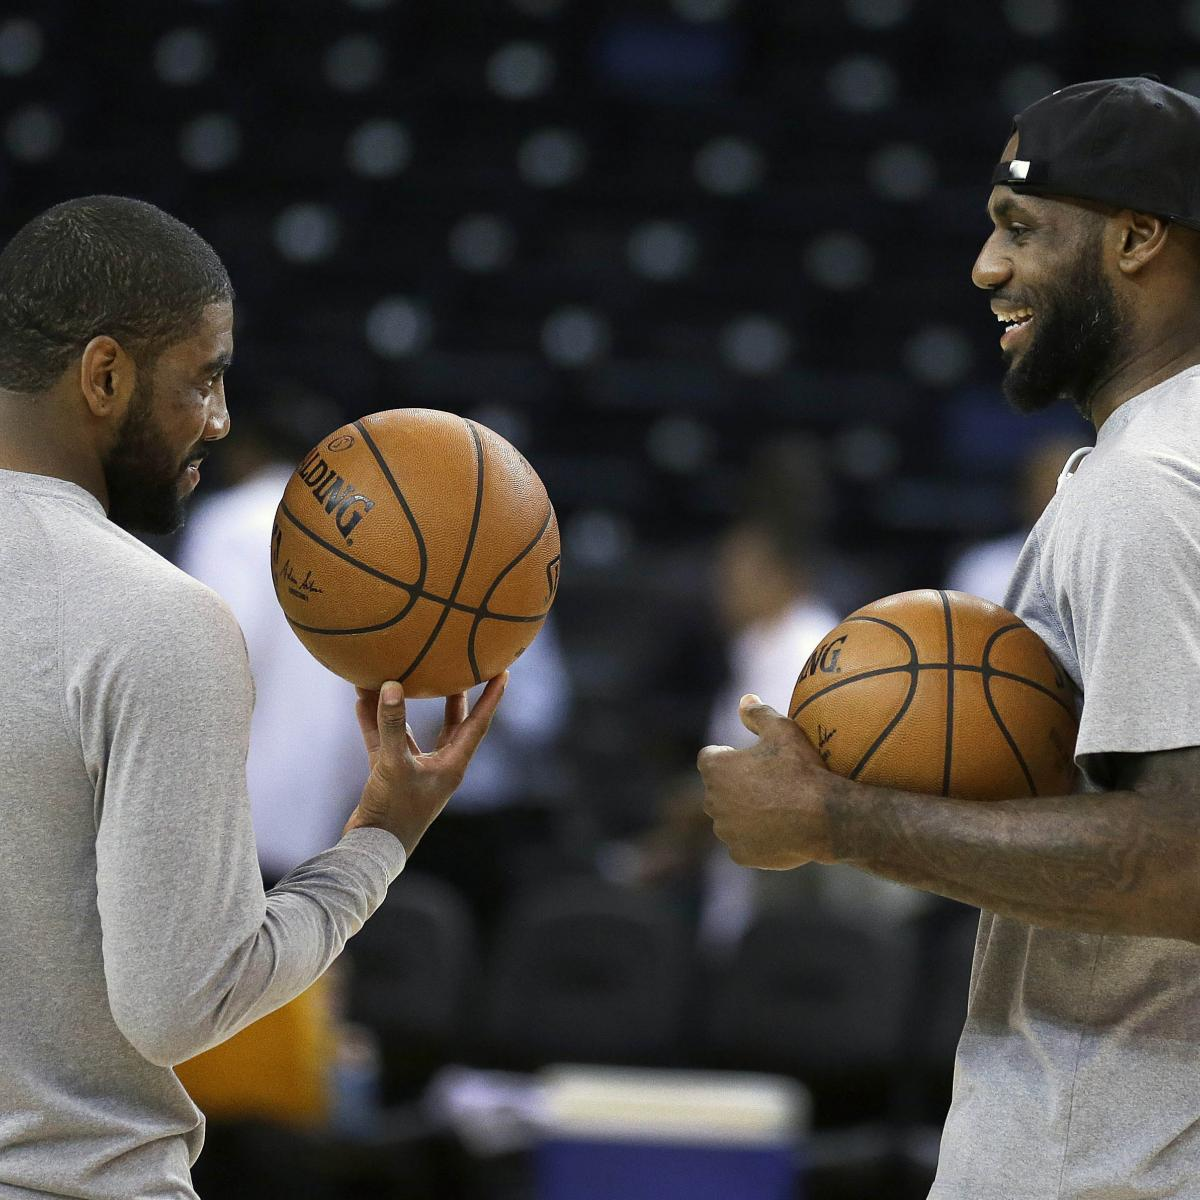 James Harden Free Agency: LeBron James' Lakers, Kyrie Irving's Celtics Draw Most